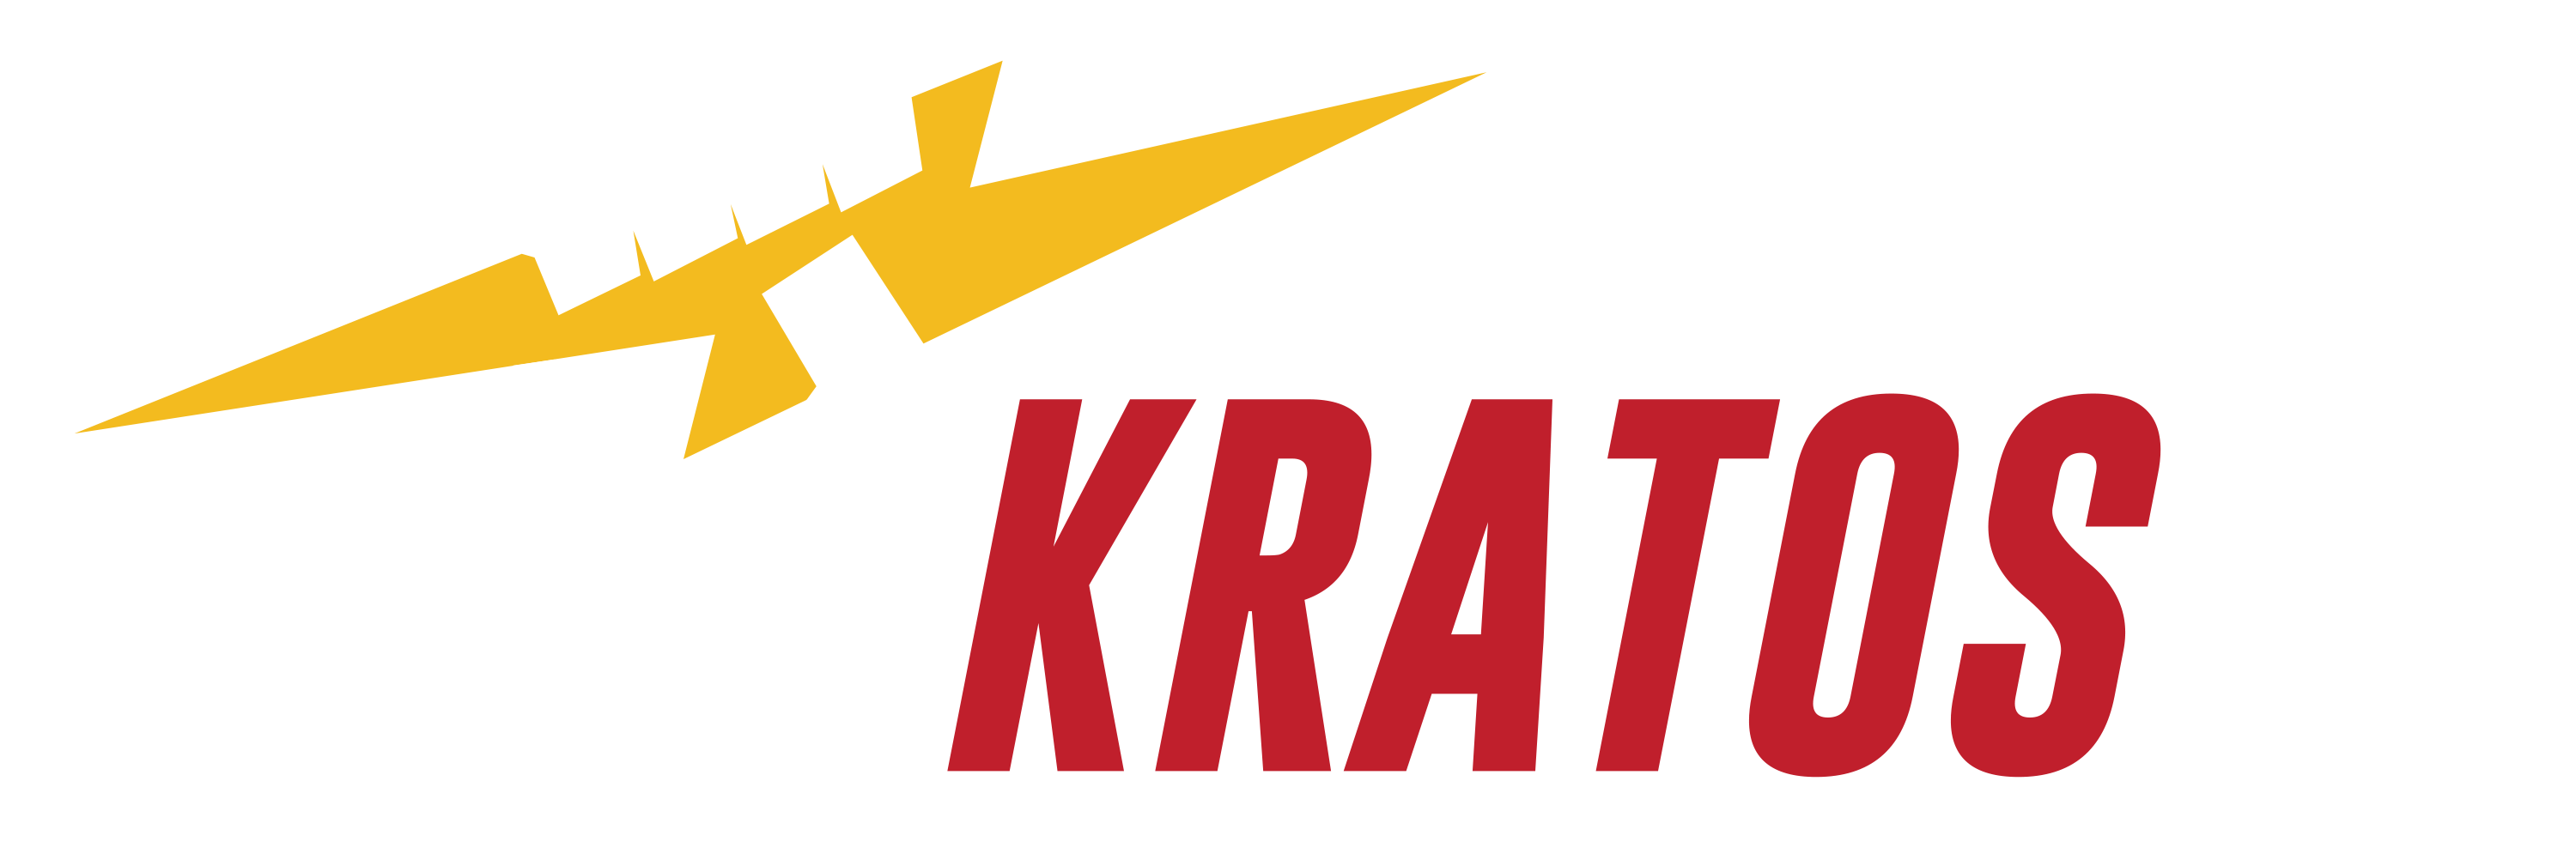 Main Kratos Logo